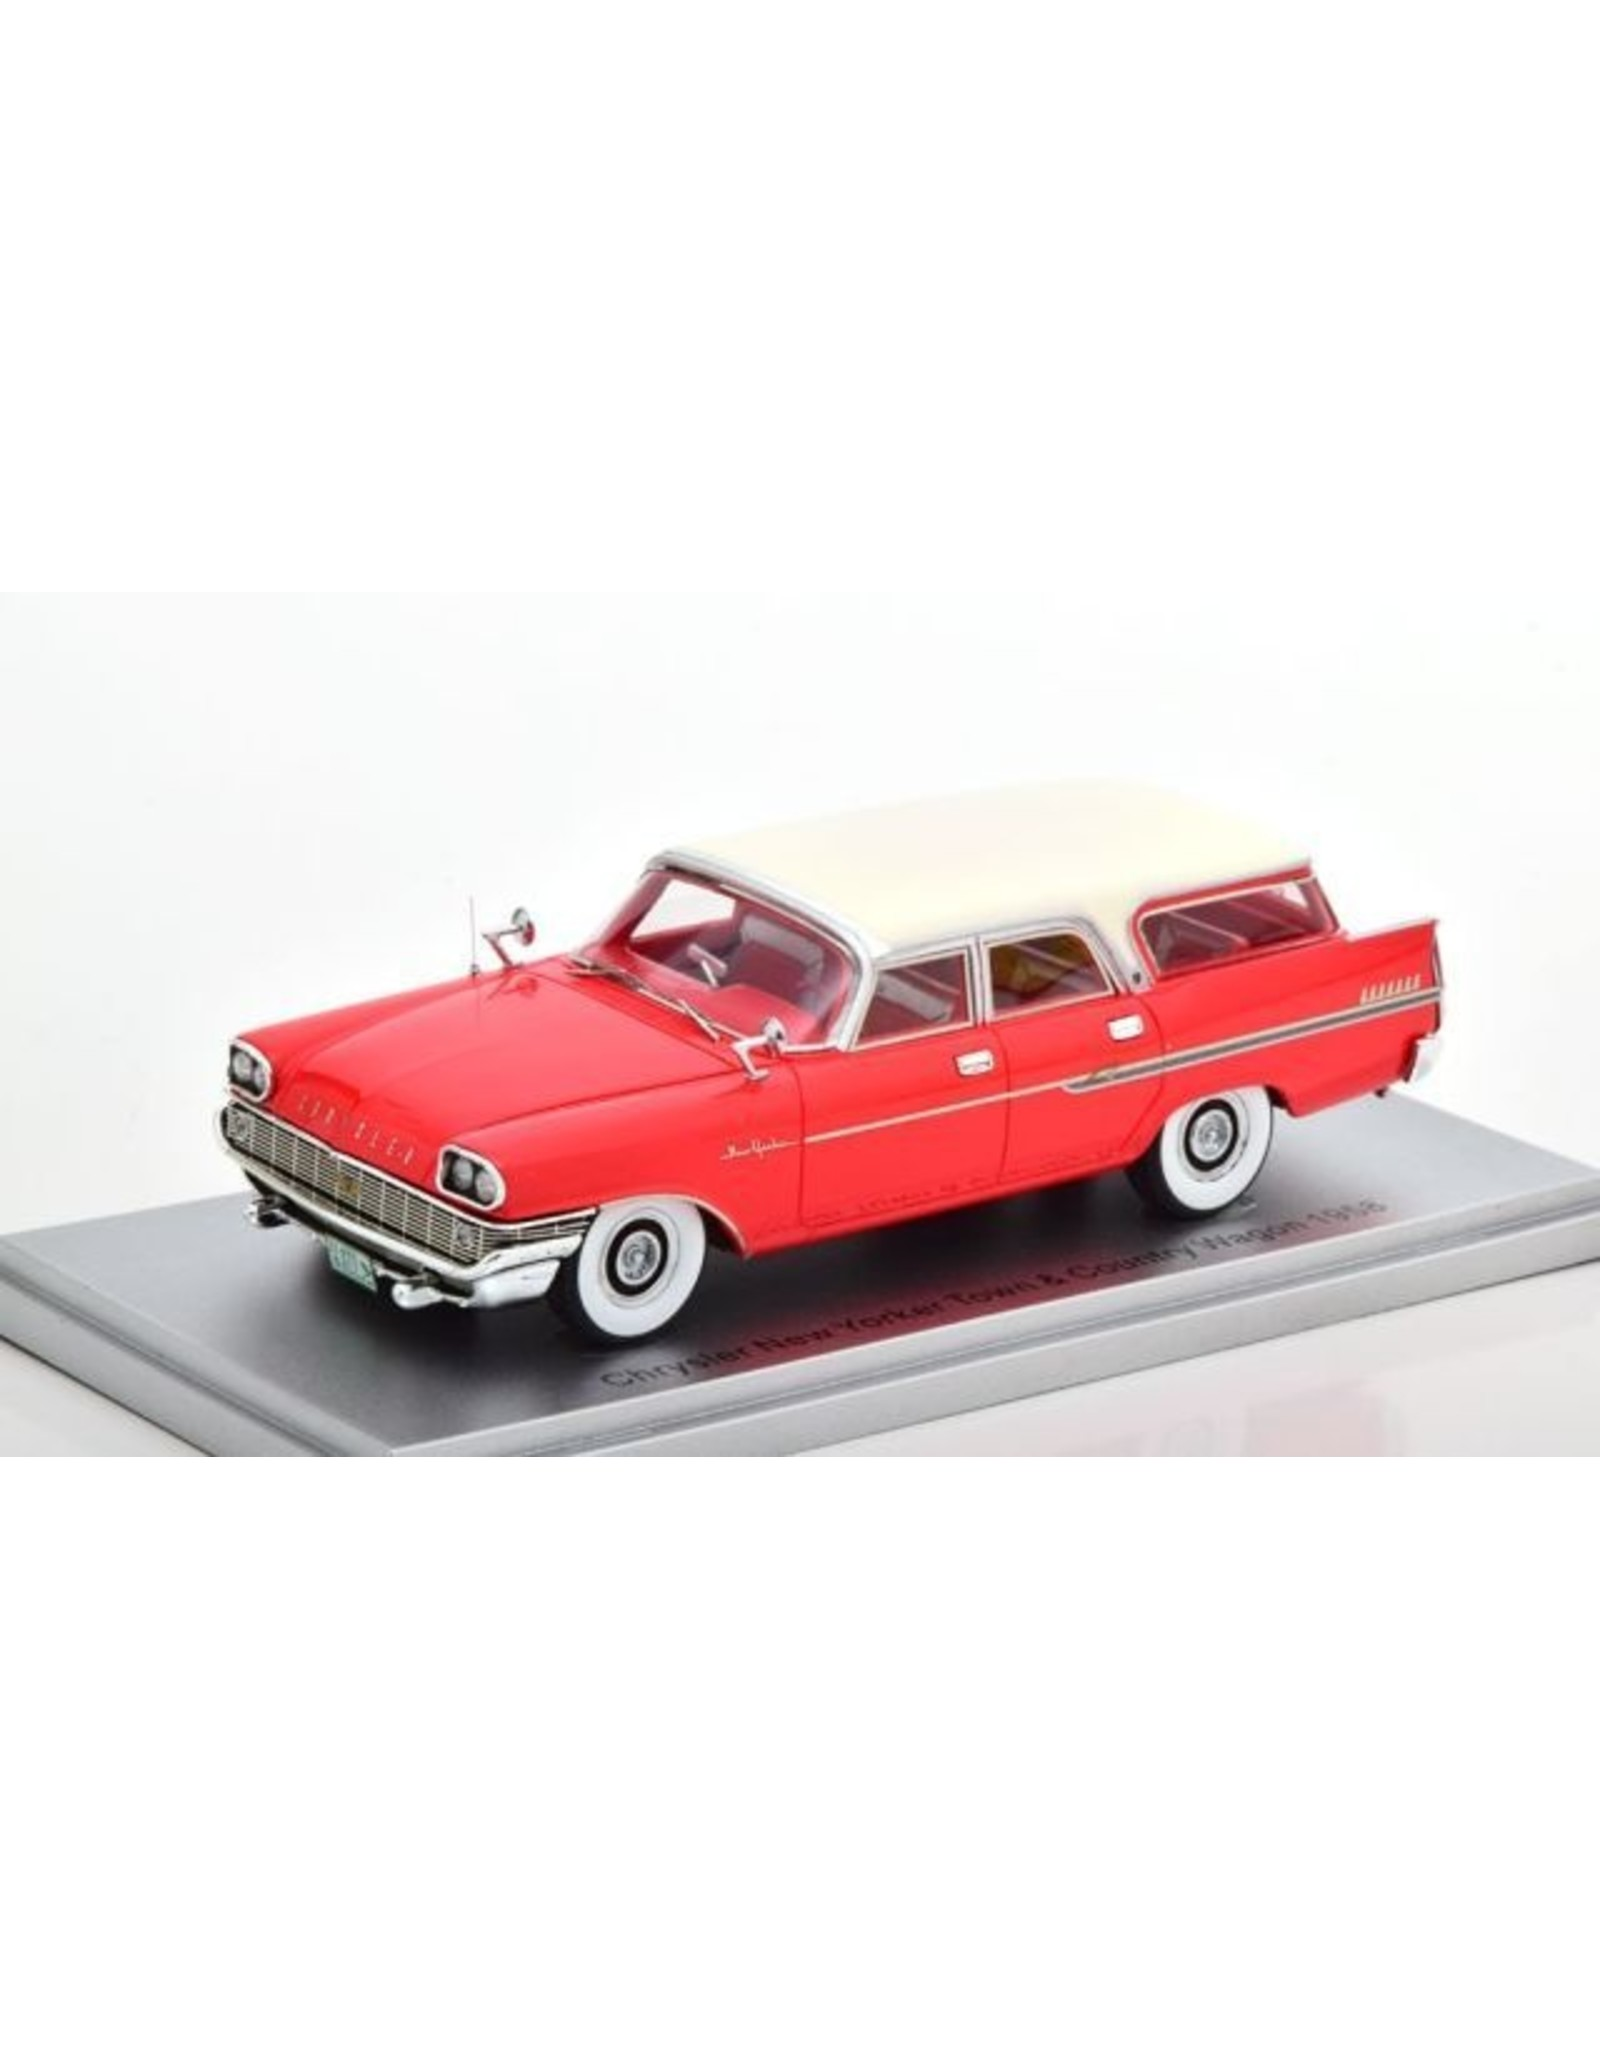 Chrysler CHRYSLER NEW YORKER TOWN & COUNTRY WAGON-1958(red/white roof)